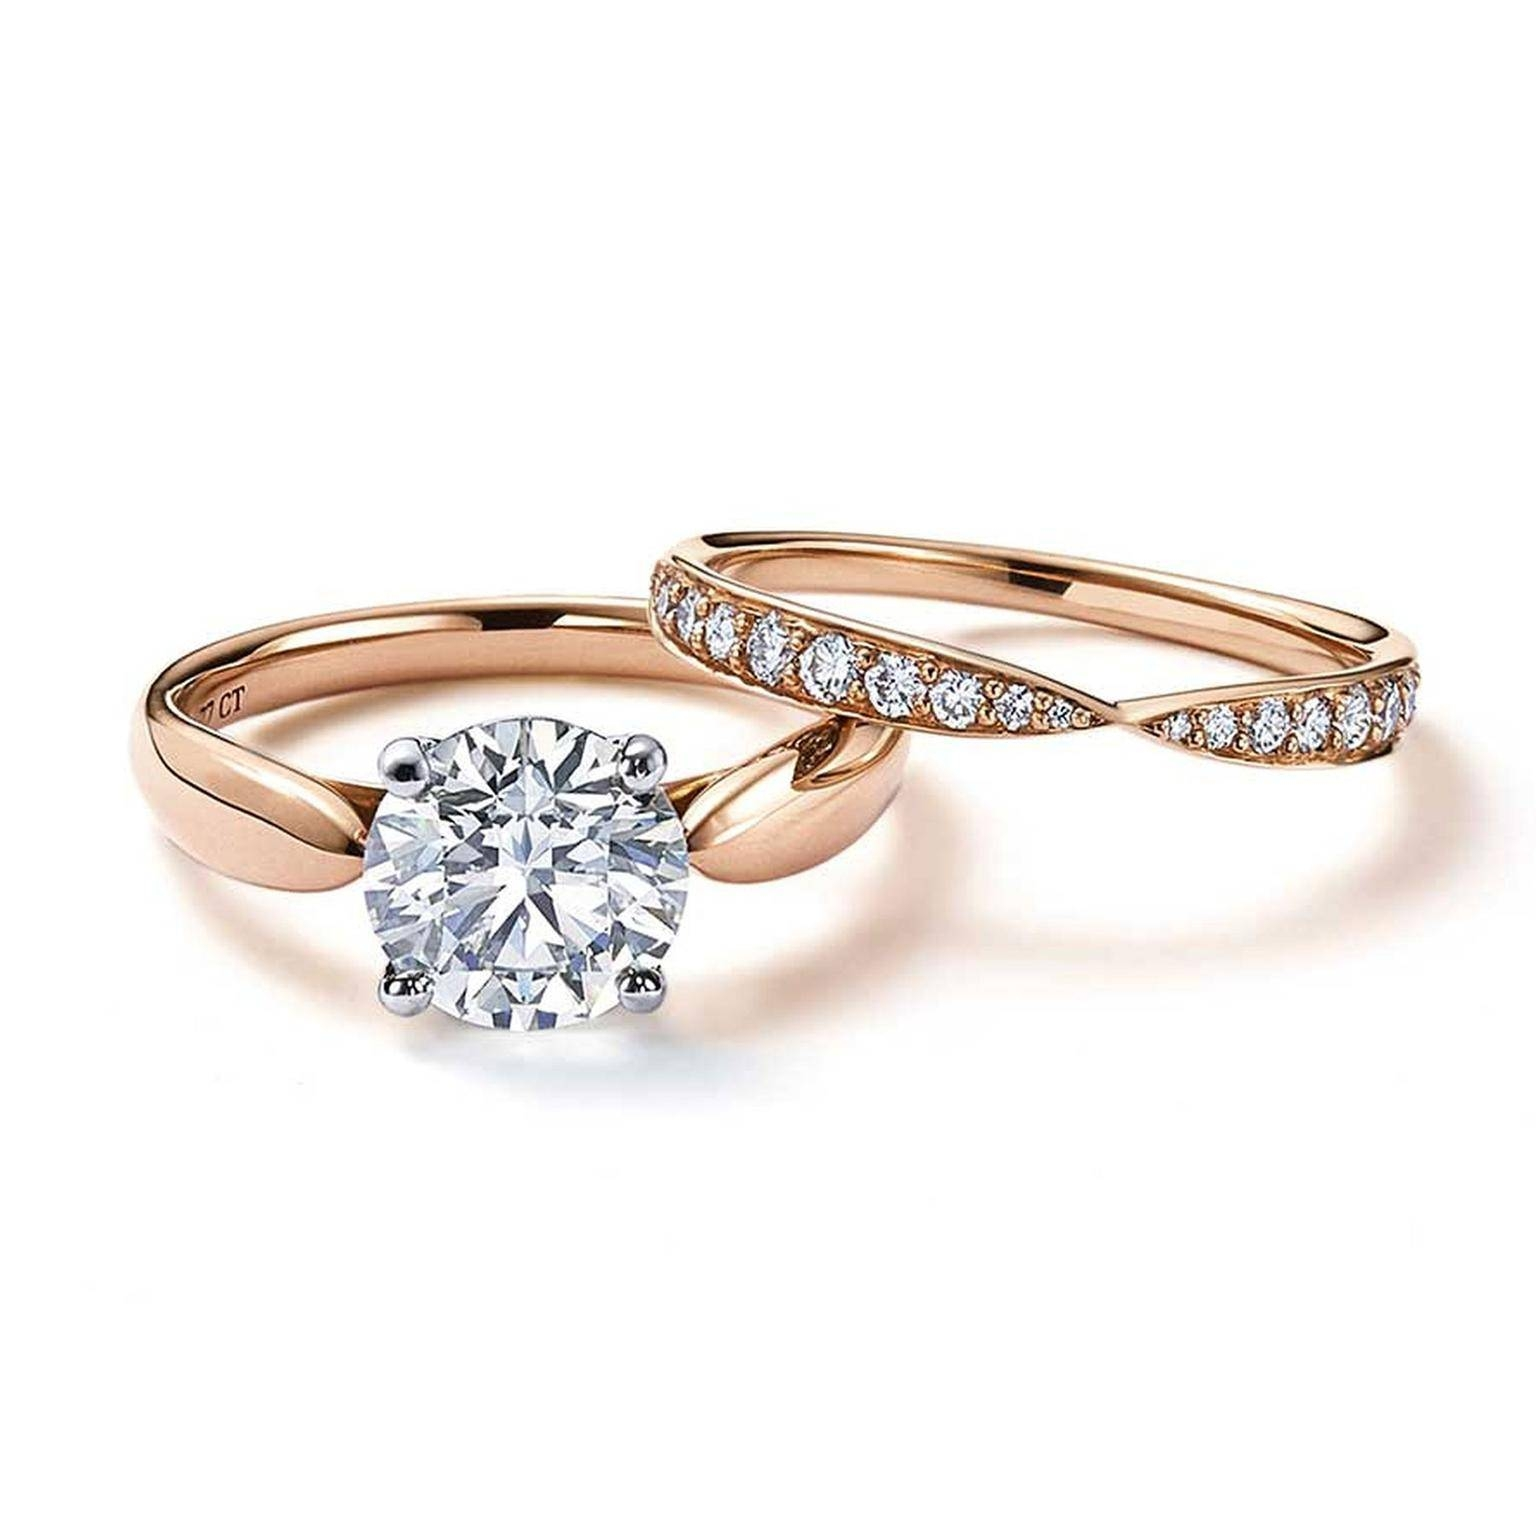 Harmony Rose Gold Engagement Ring With A Central Solitaire Diamond With Gold Engagement Rings And Wedding Bands (View 4 of 15)